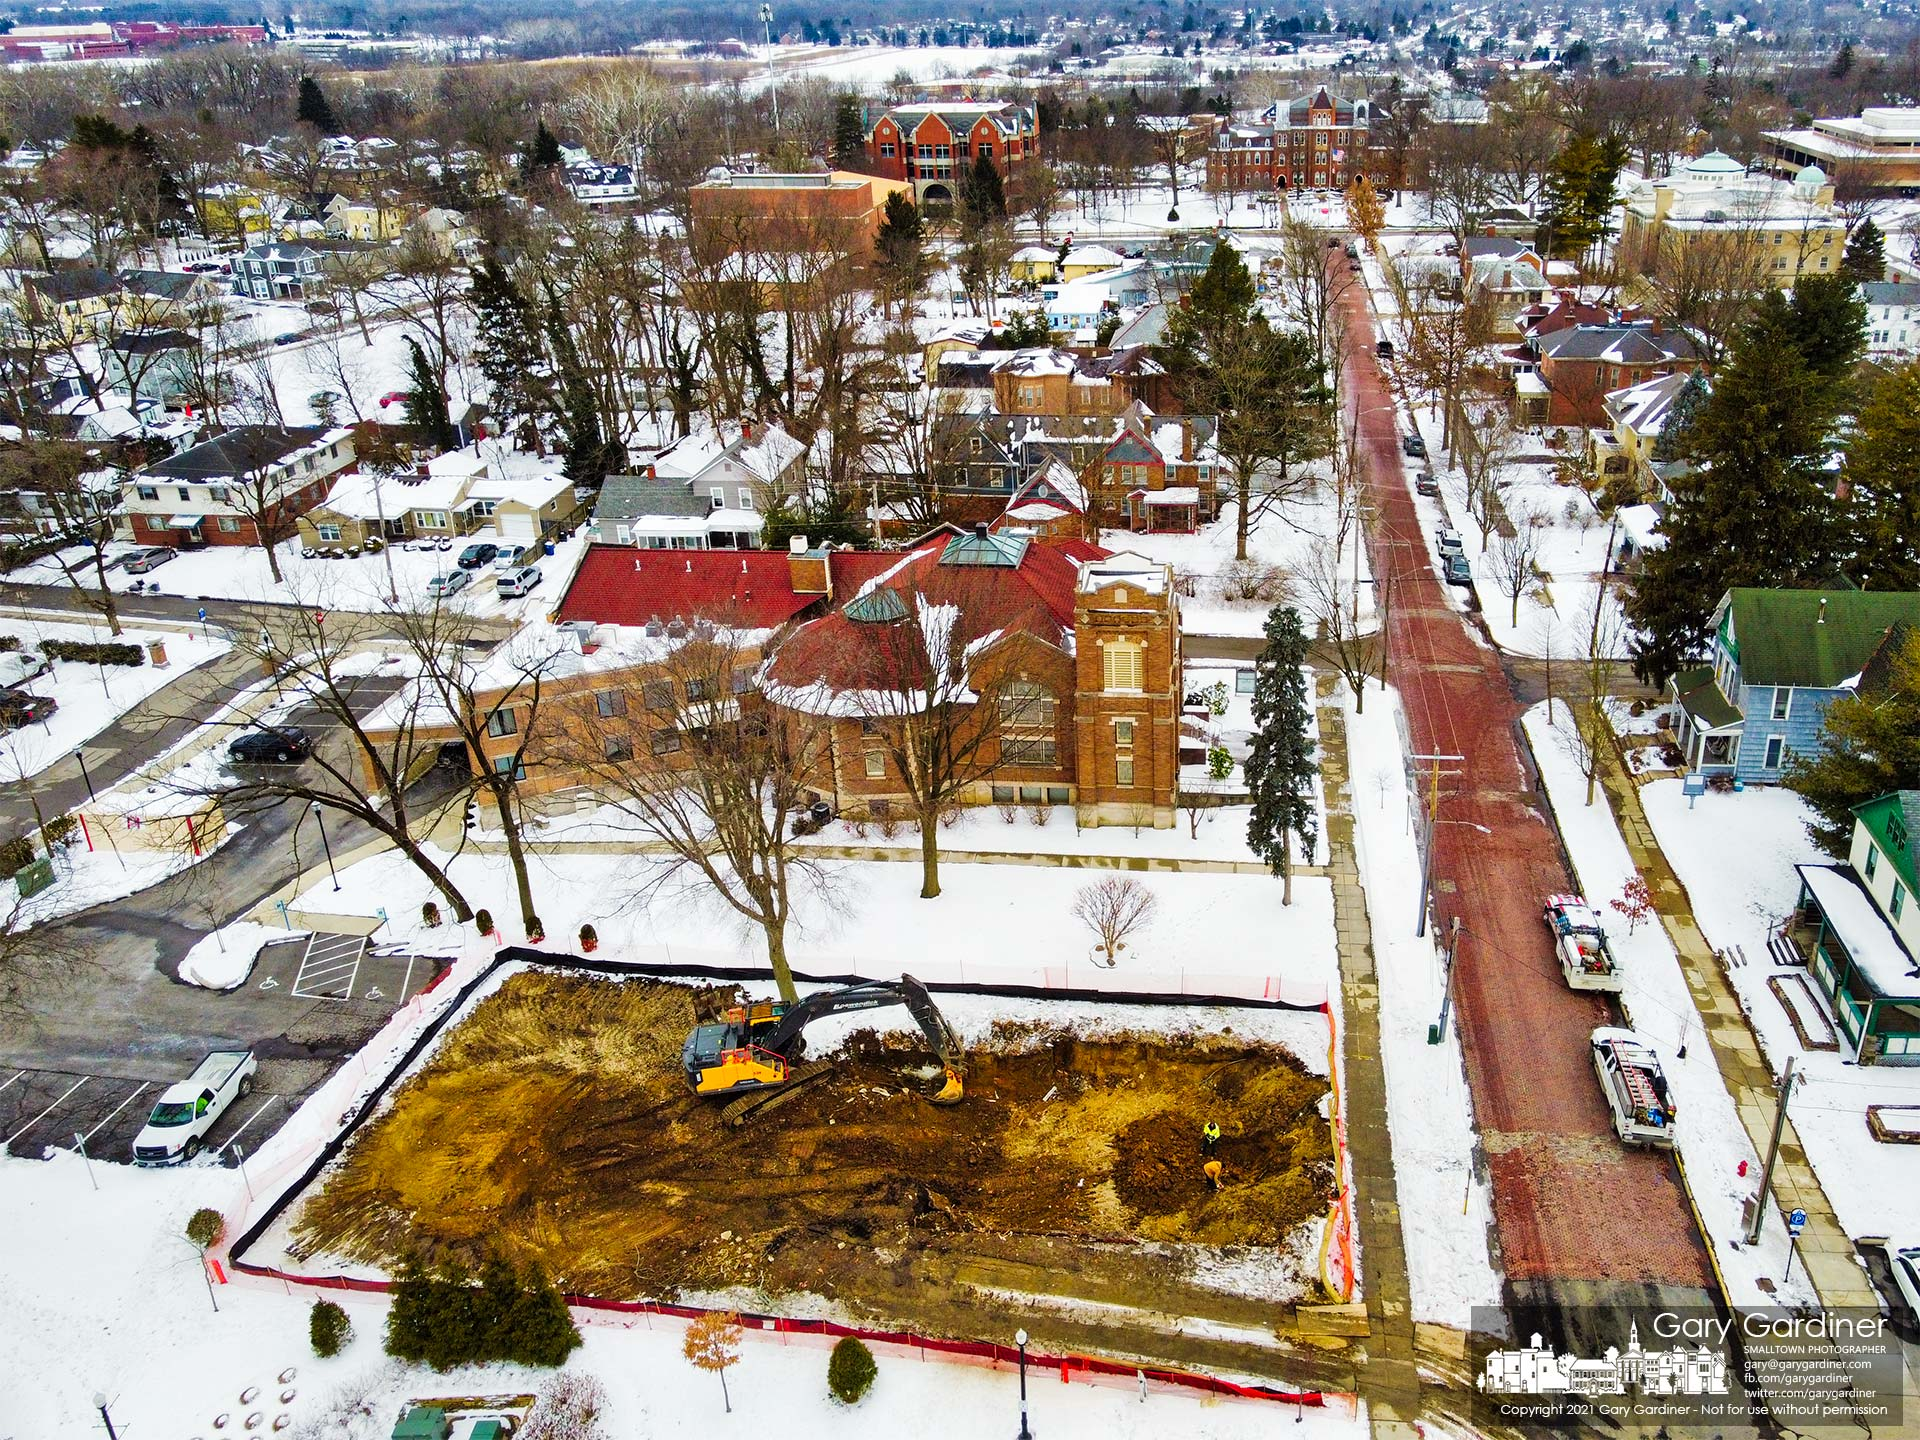 A demolition crew clears the ground after demolishing a house behind city hall to make way for a parking lot expansion. My Final Photo for Feb. 5, 2021.